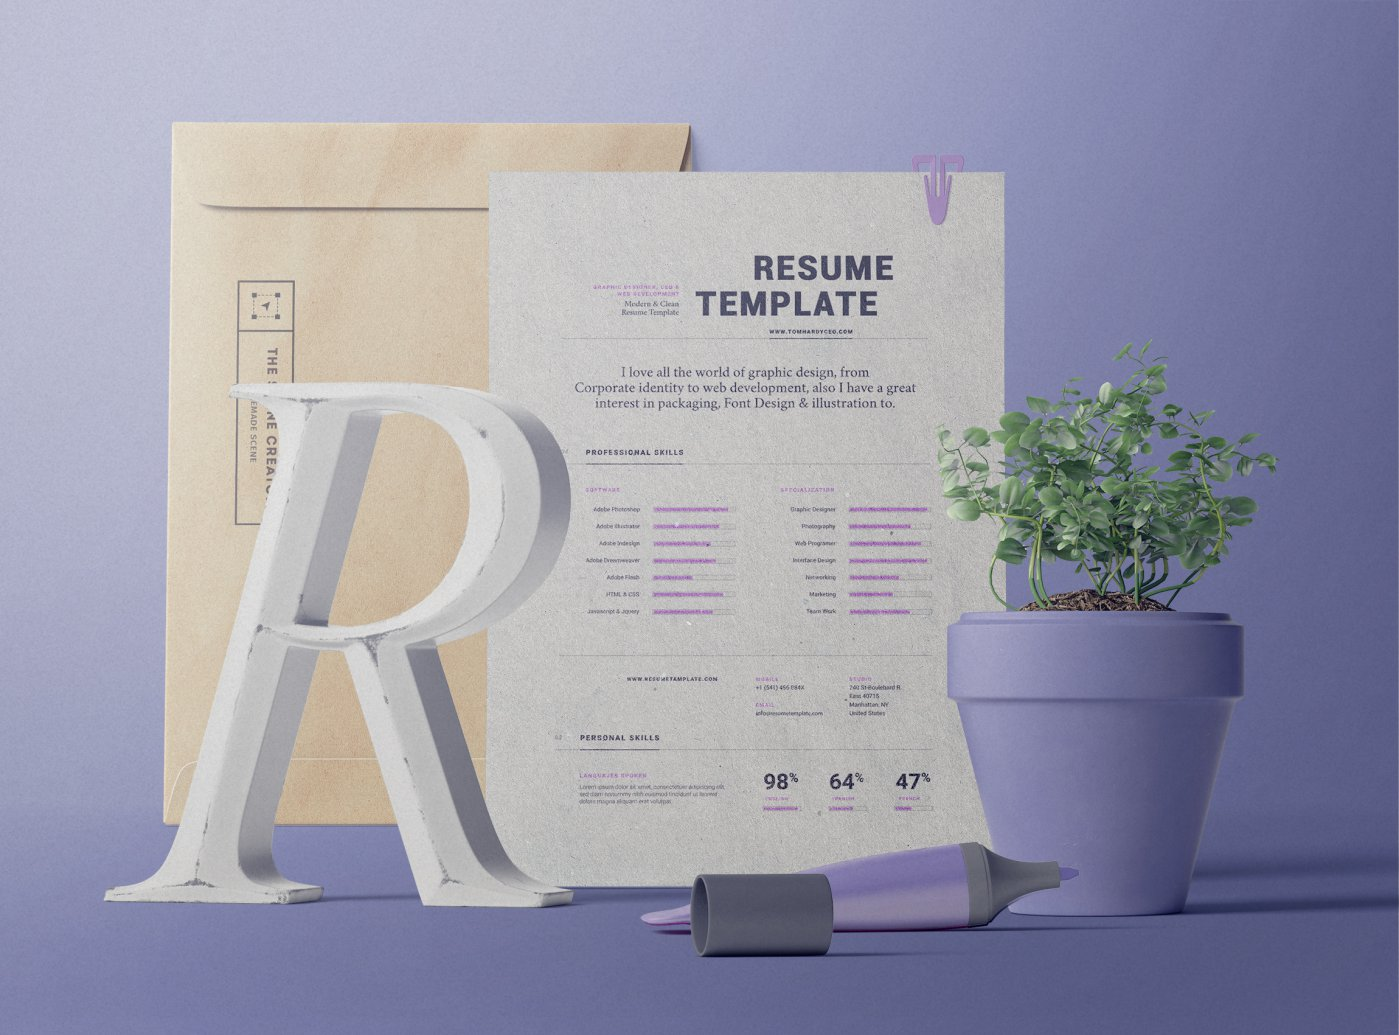 Free The Scene Creator Mockup | Resume, Envelope, Paper, Plants, Pen Frontview PSD